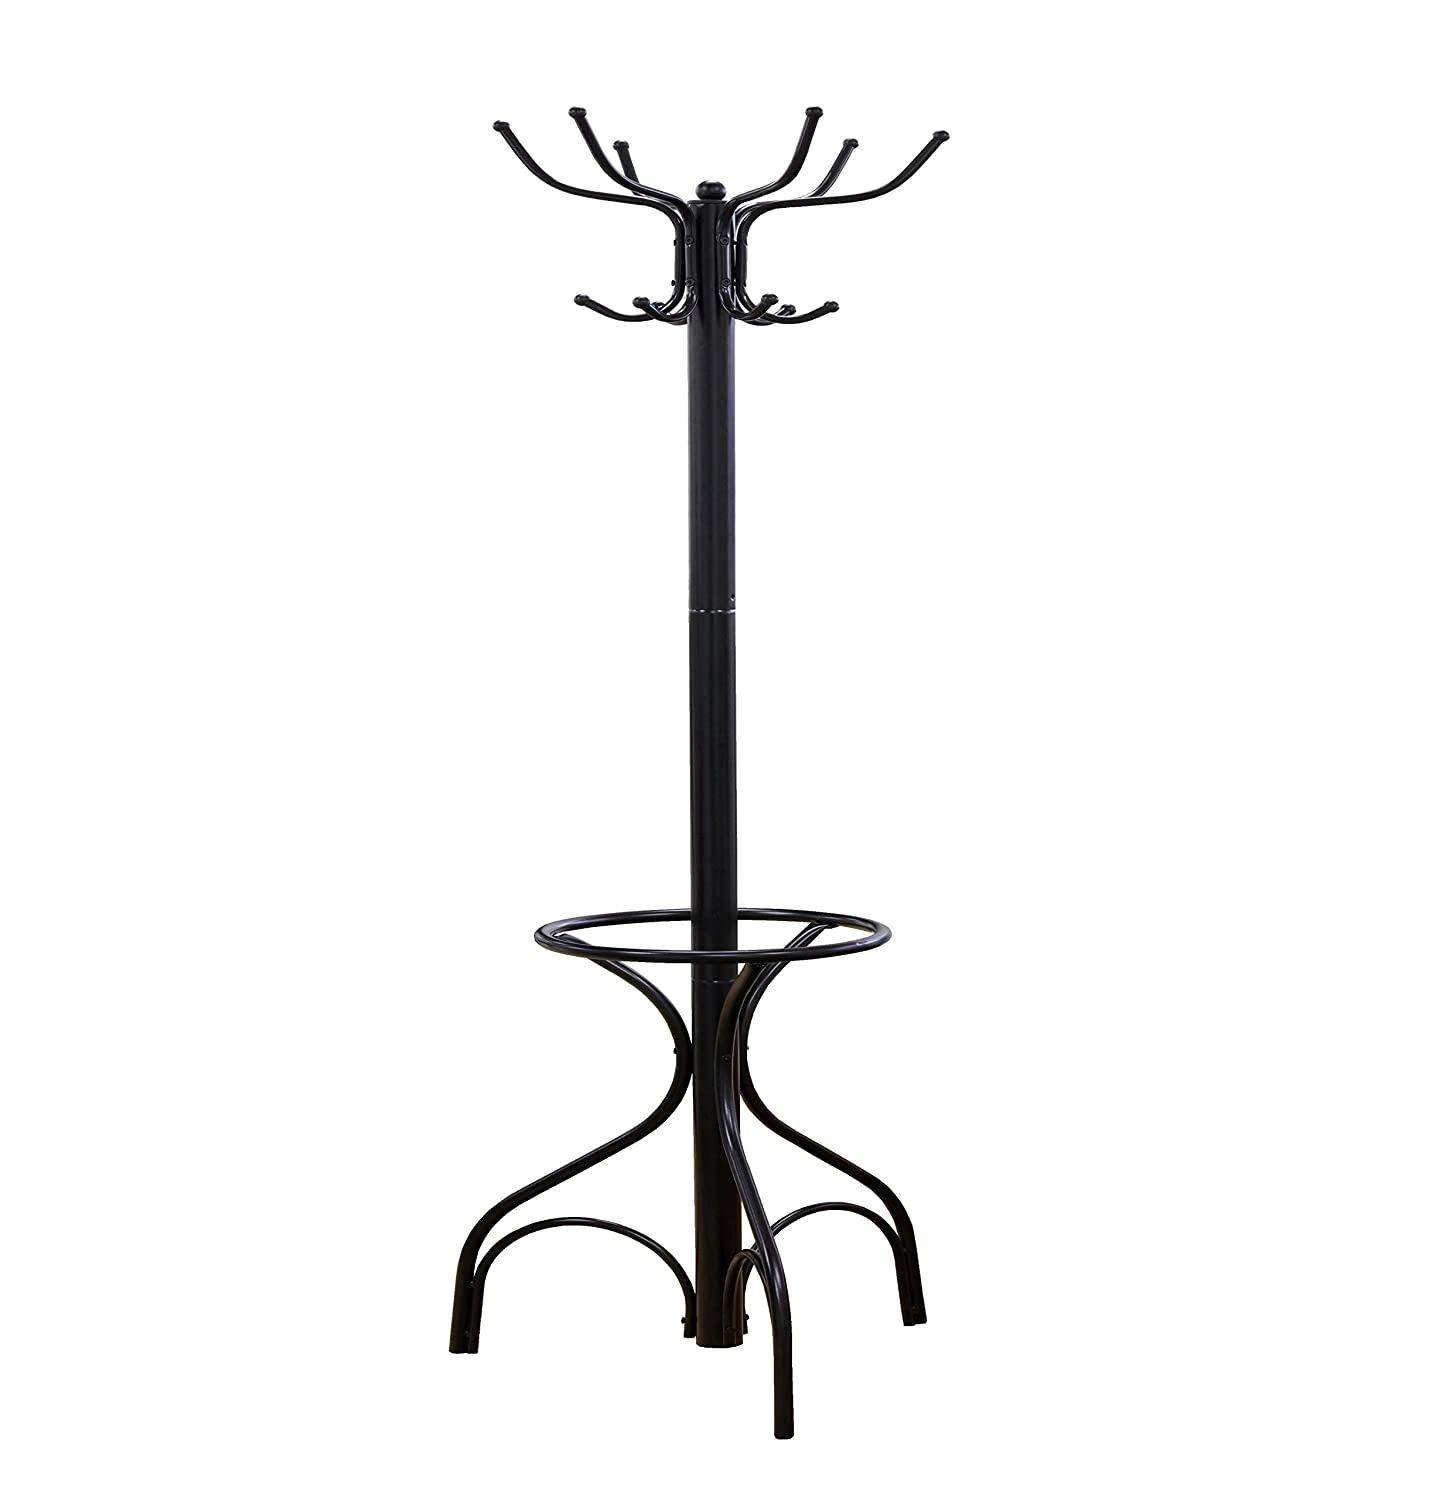 Frenchi Home Furnishing Metal Coat Rack with Umbrella Stand, Black Frenchi Furniture CR004